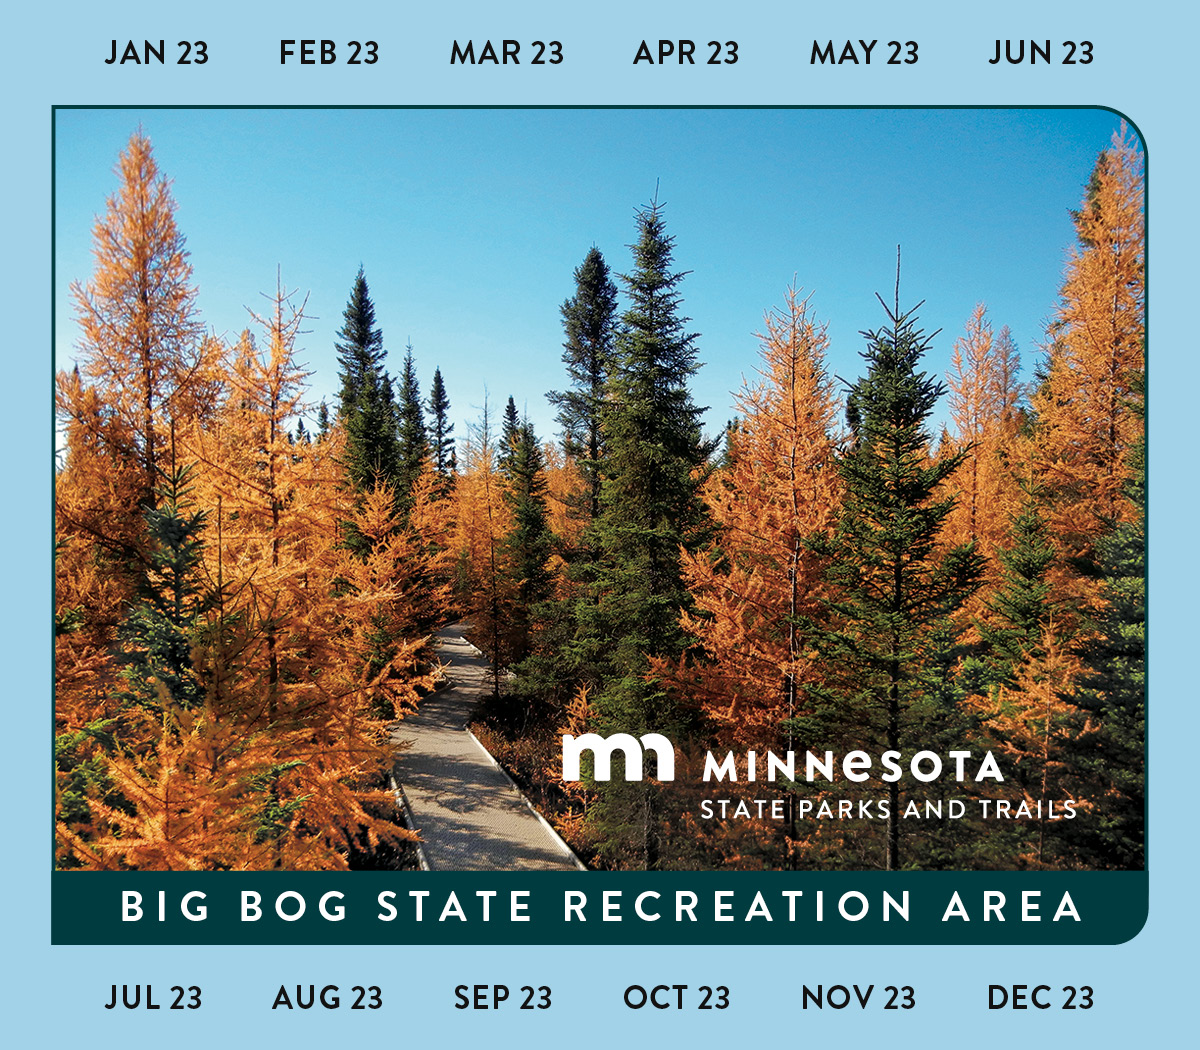 Image of the 2016 Minnesota State Park Annual Permit